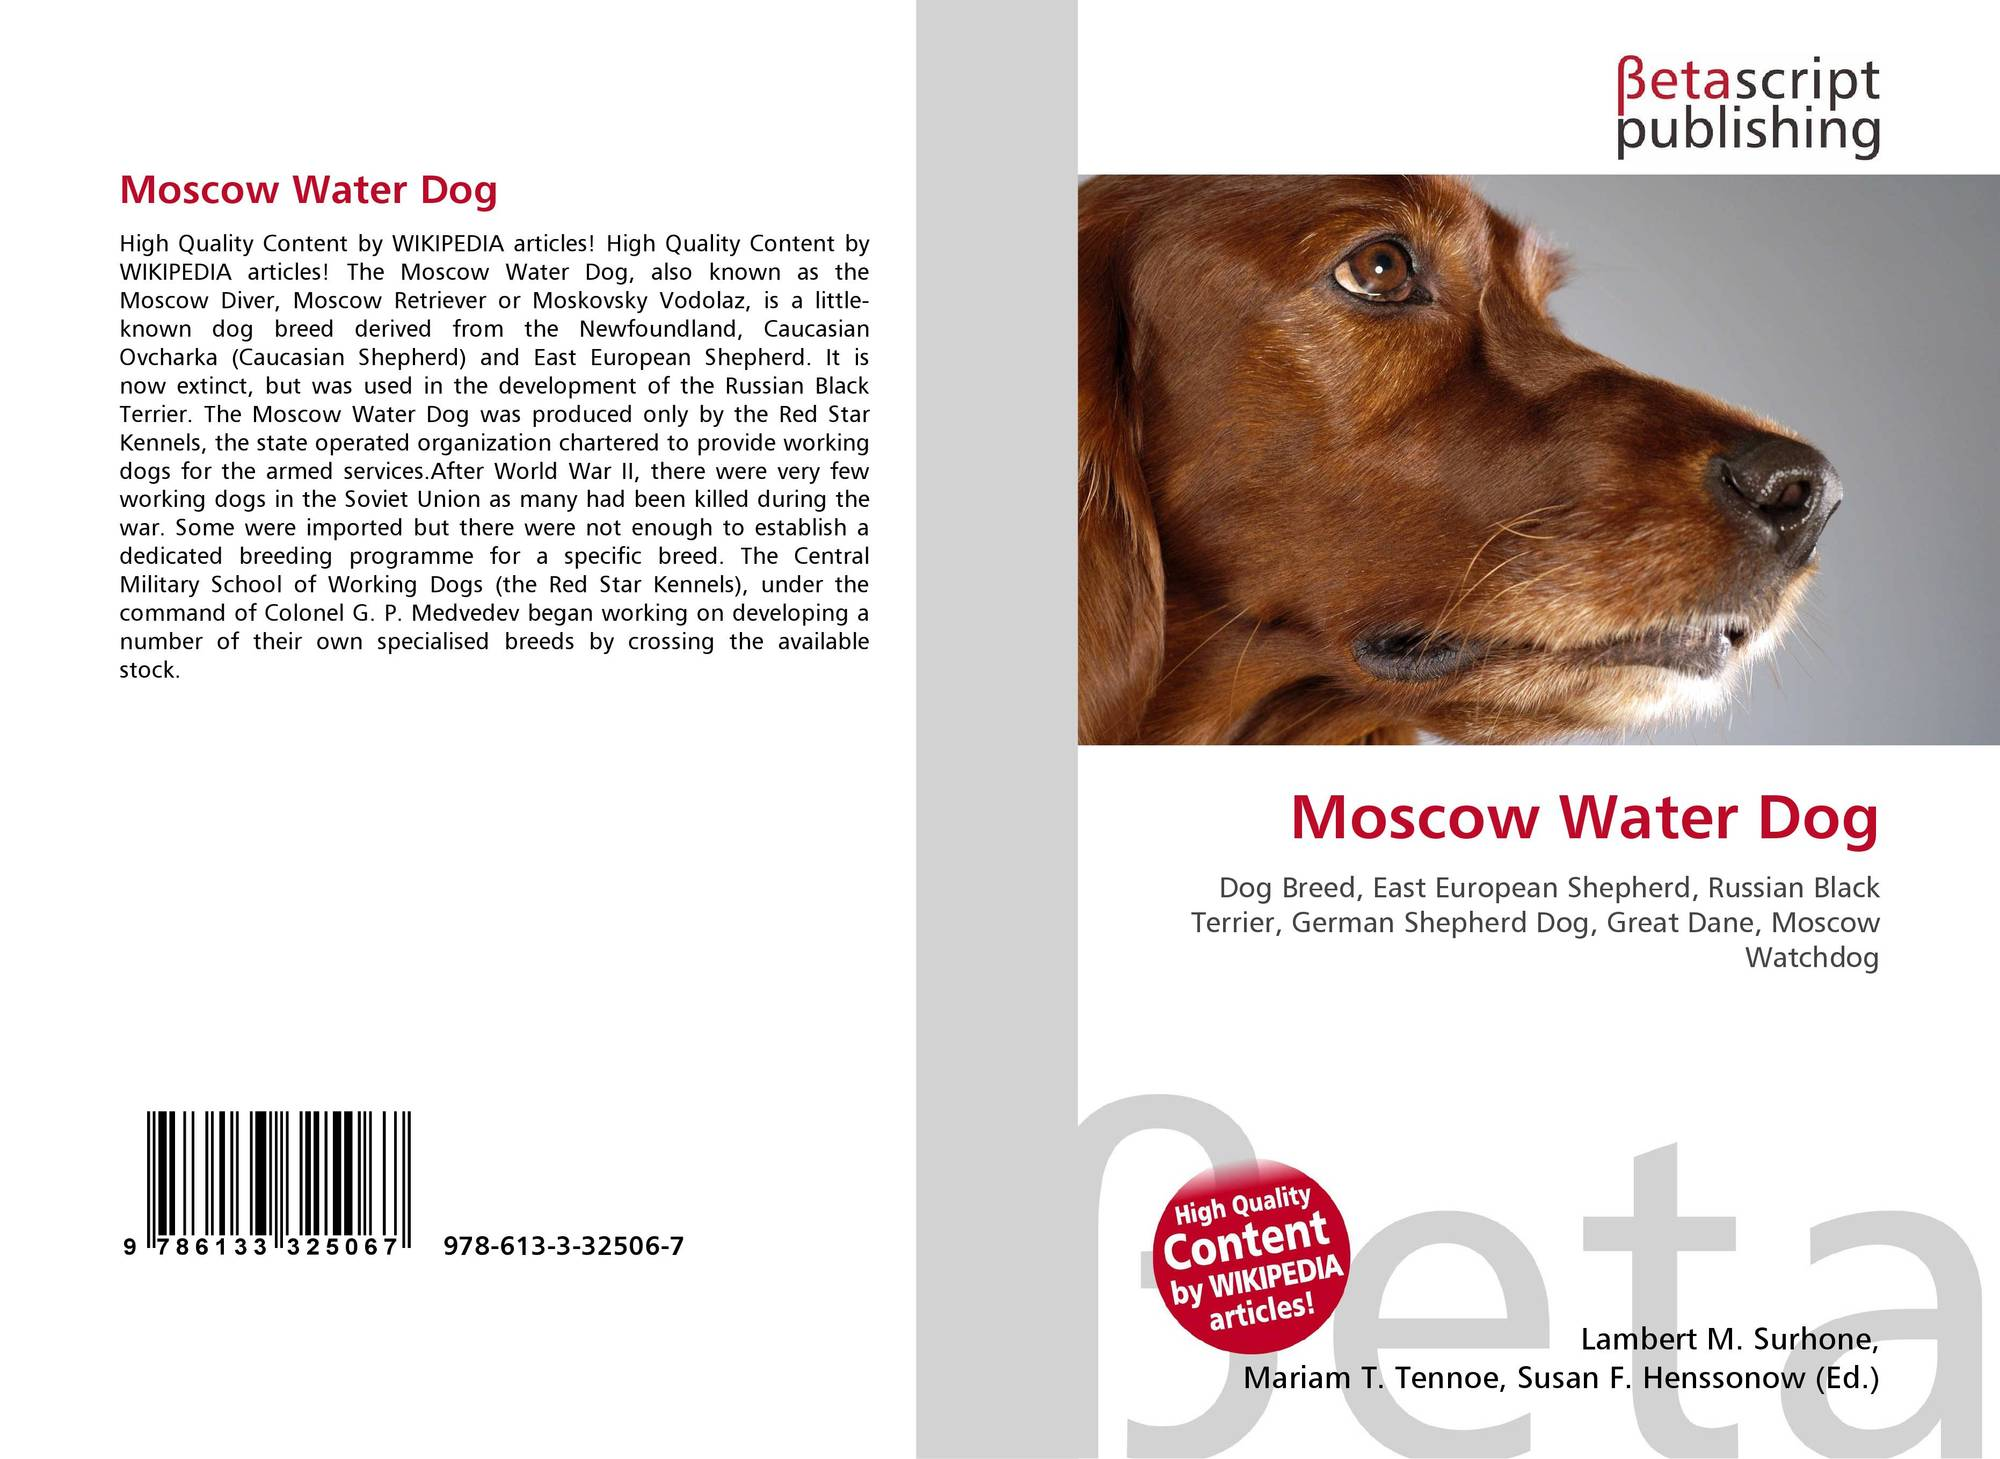 Moscow Water Dog 978 613 3 32506 7 6133325062 9786133325067